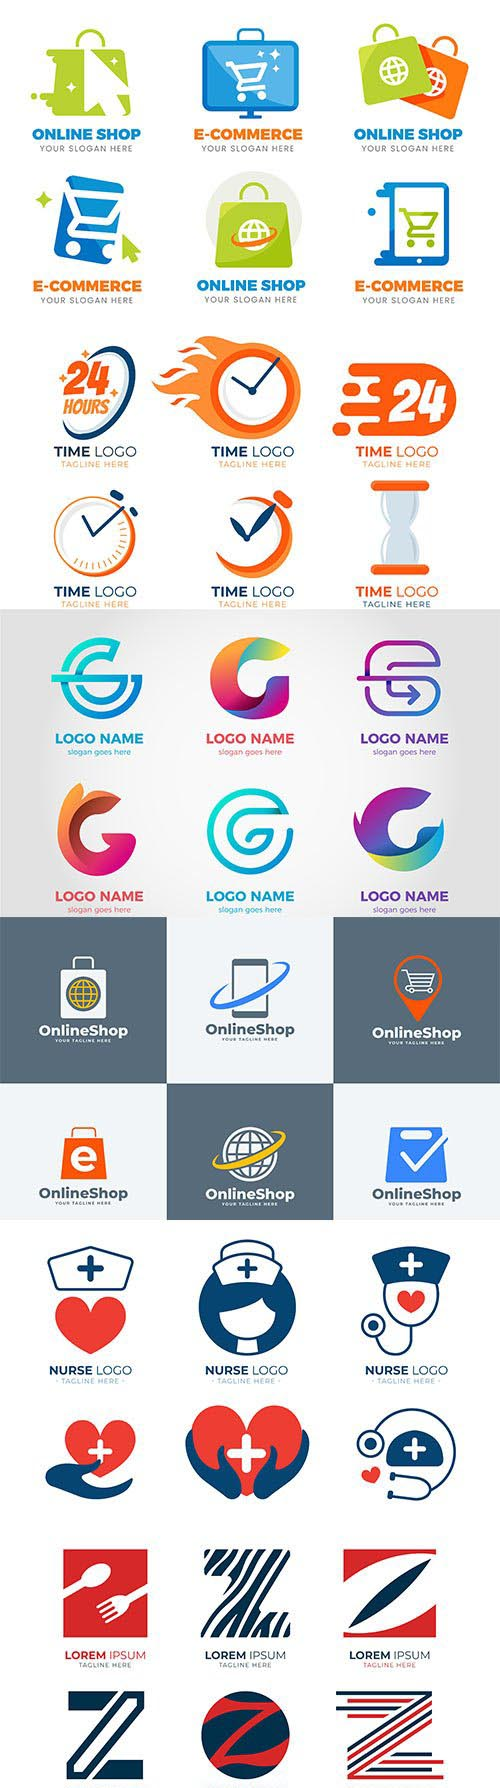 Logos and signs in vector